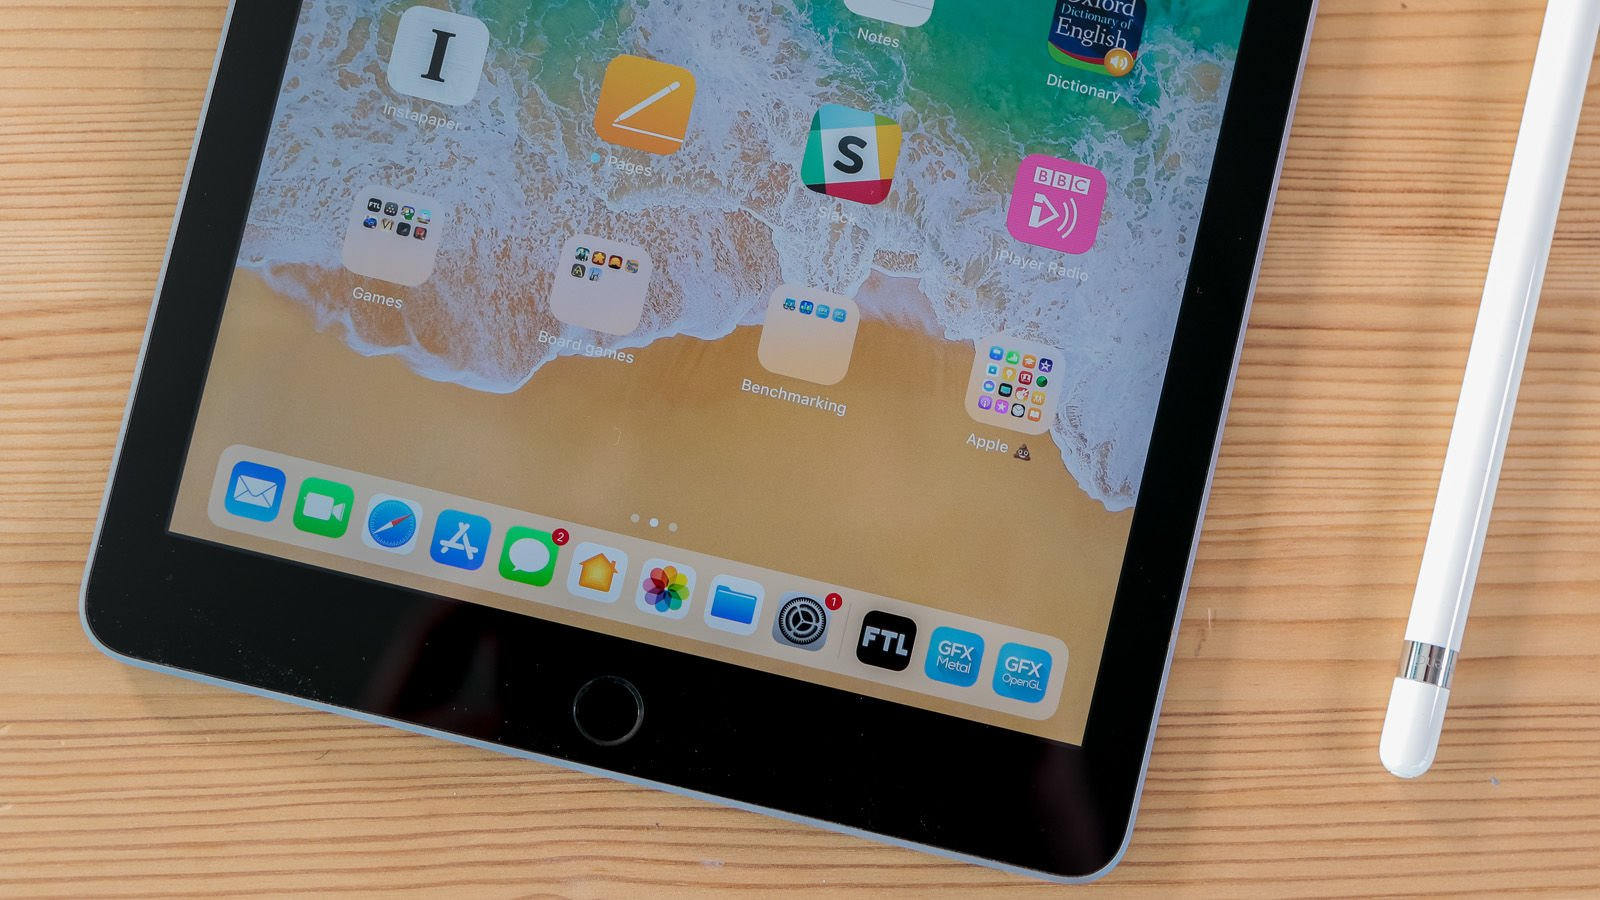 How to identify which iPad you have: Home button